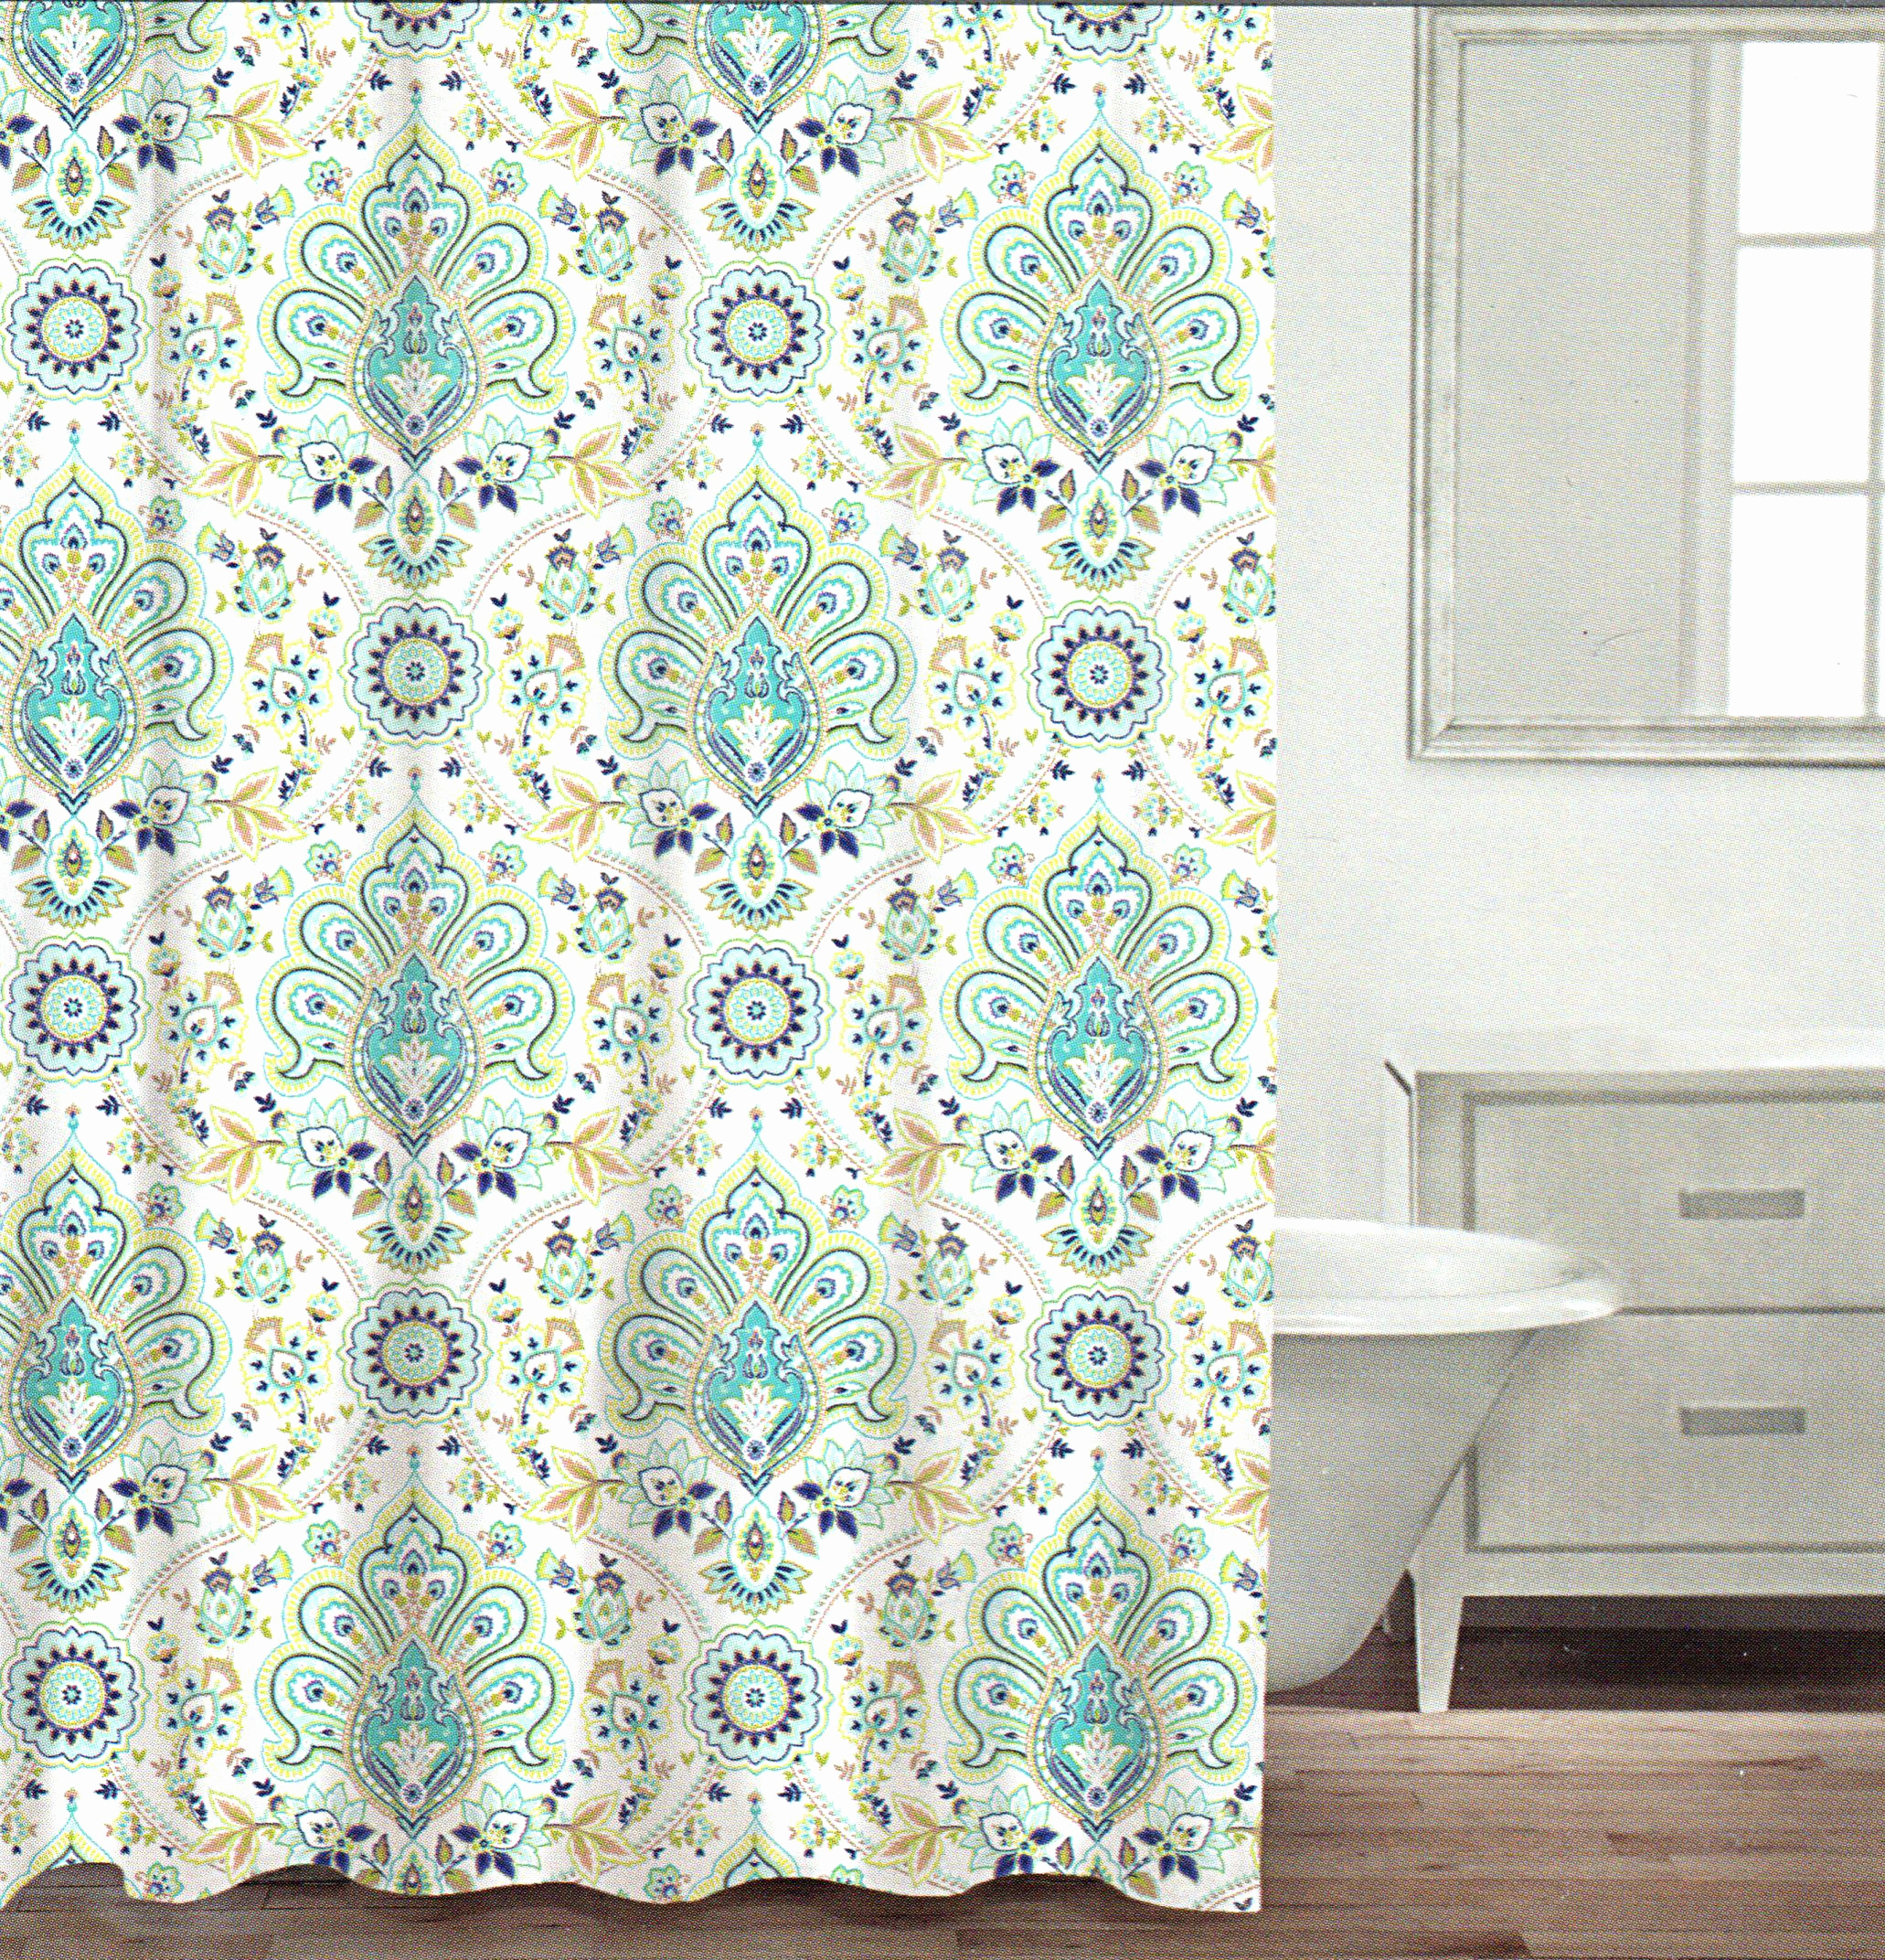 Teal And Black Shower Curtain Inspirational Curtains Pertaining To Proportions 2062 X 2144 Damask Ideas